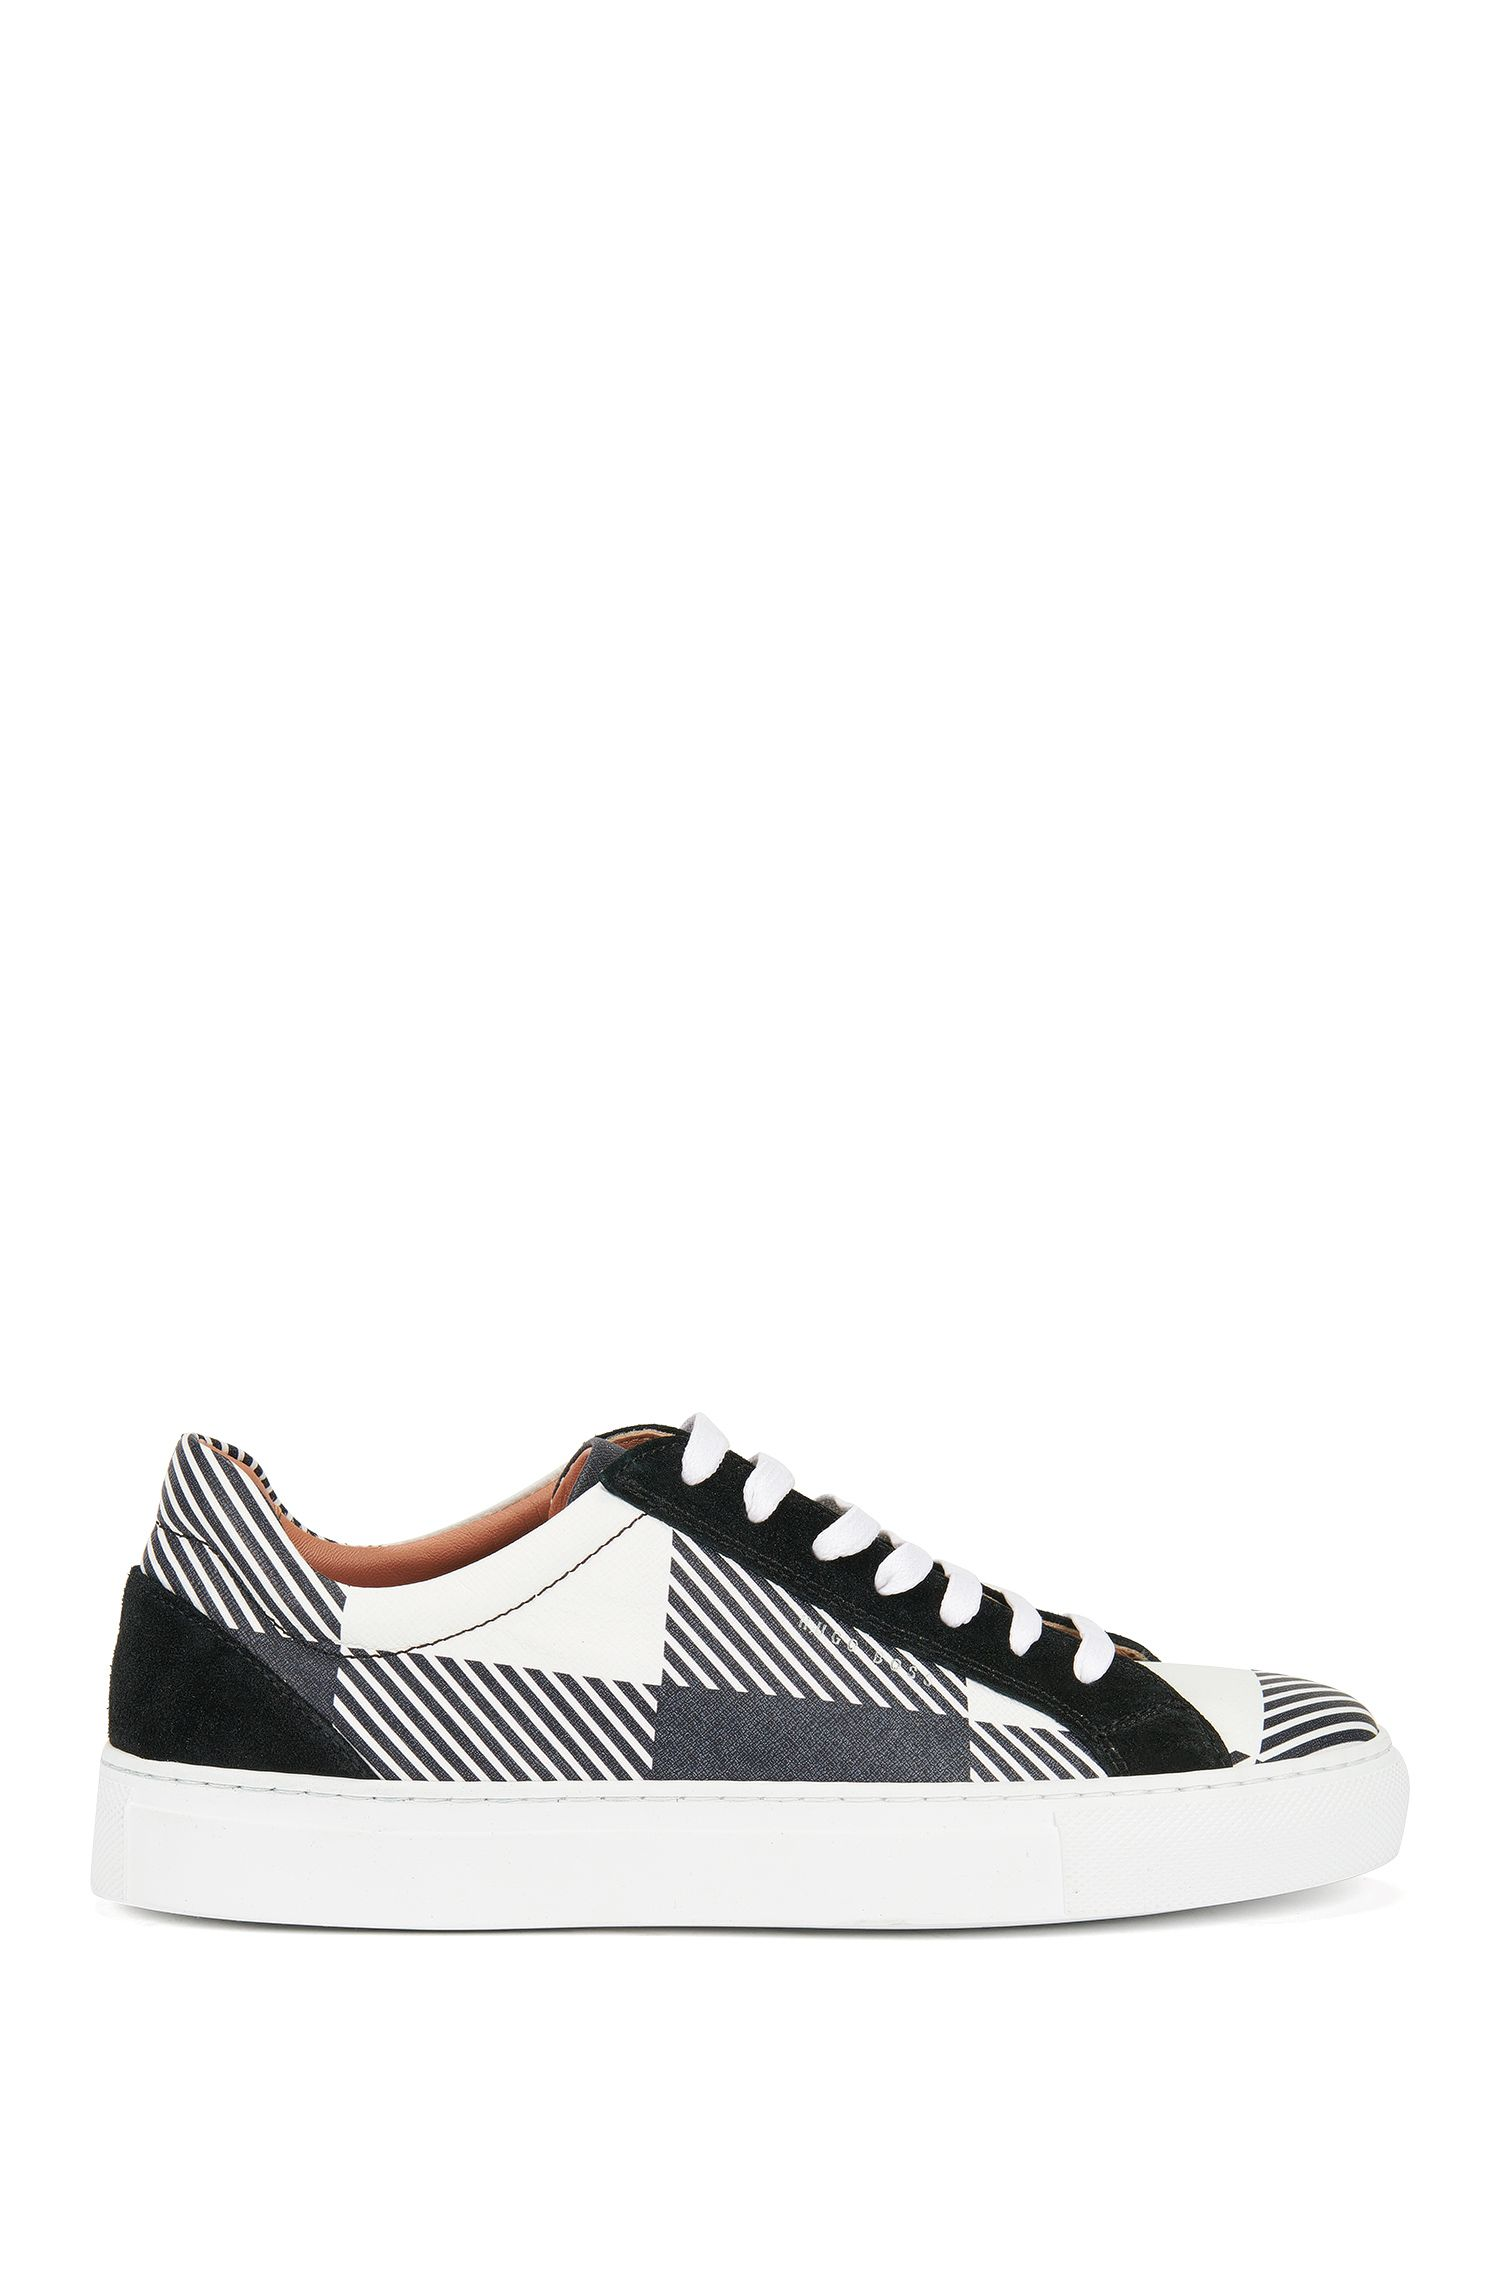 Lace-up check-print trainers in Italian leather